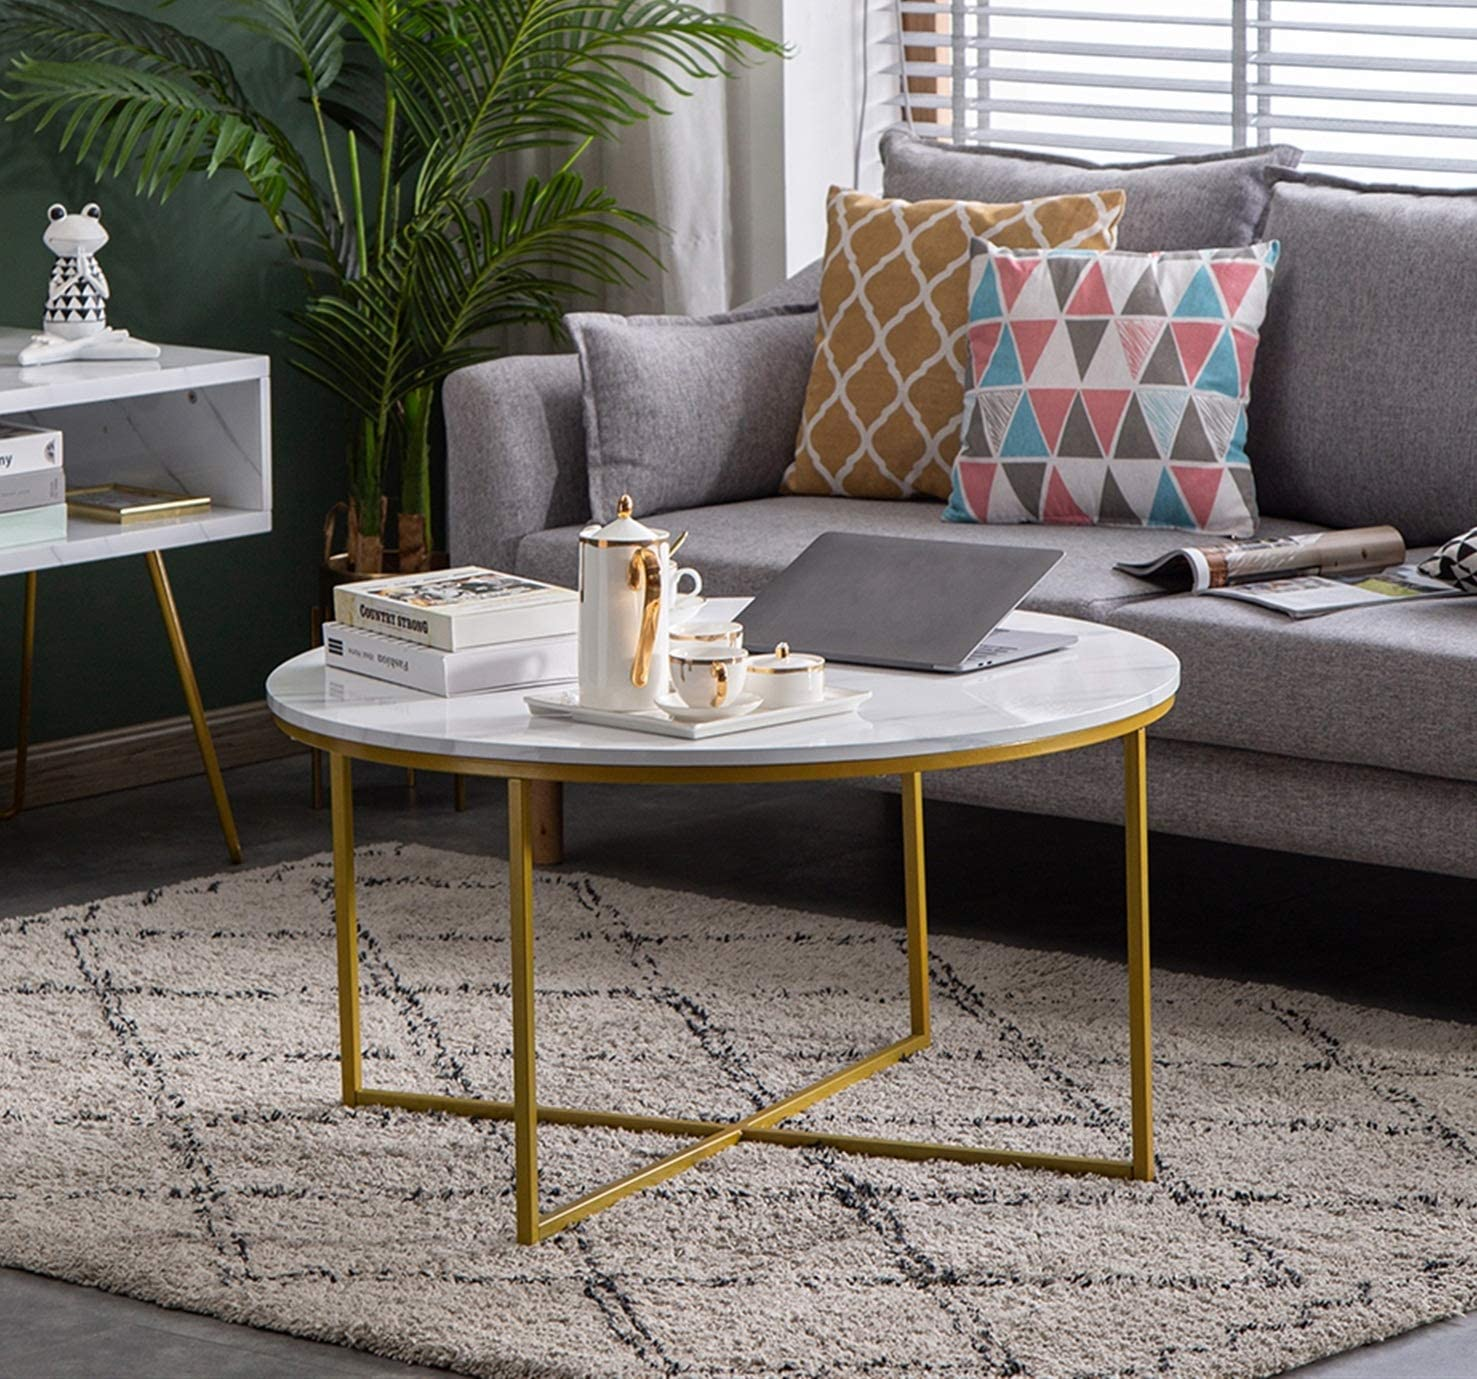 Angelbee 直営店 Luxurious Coffee Table Modern Faux Accent Round いつでも送料無料 Marble